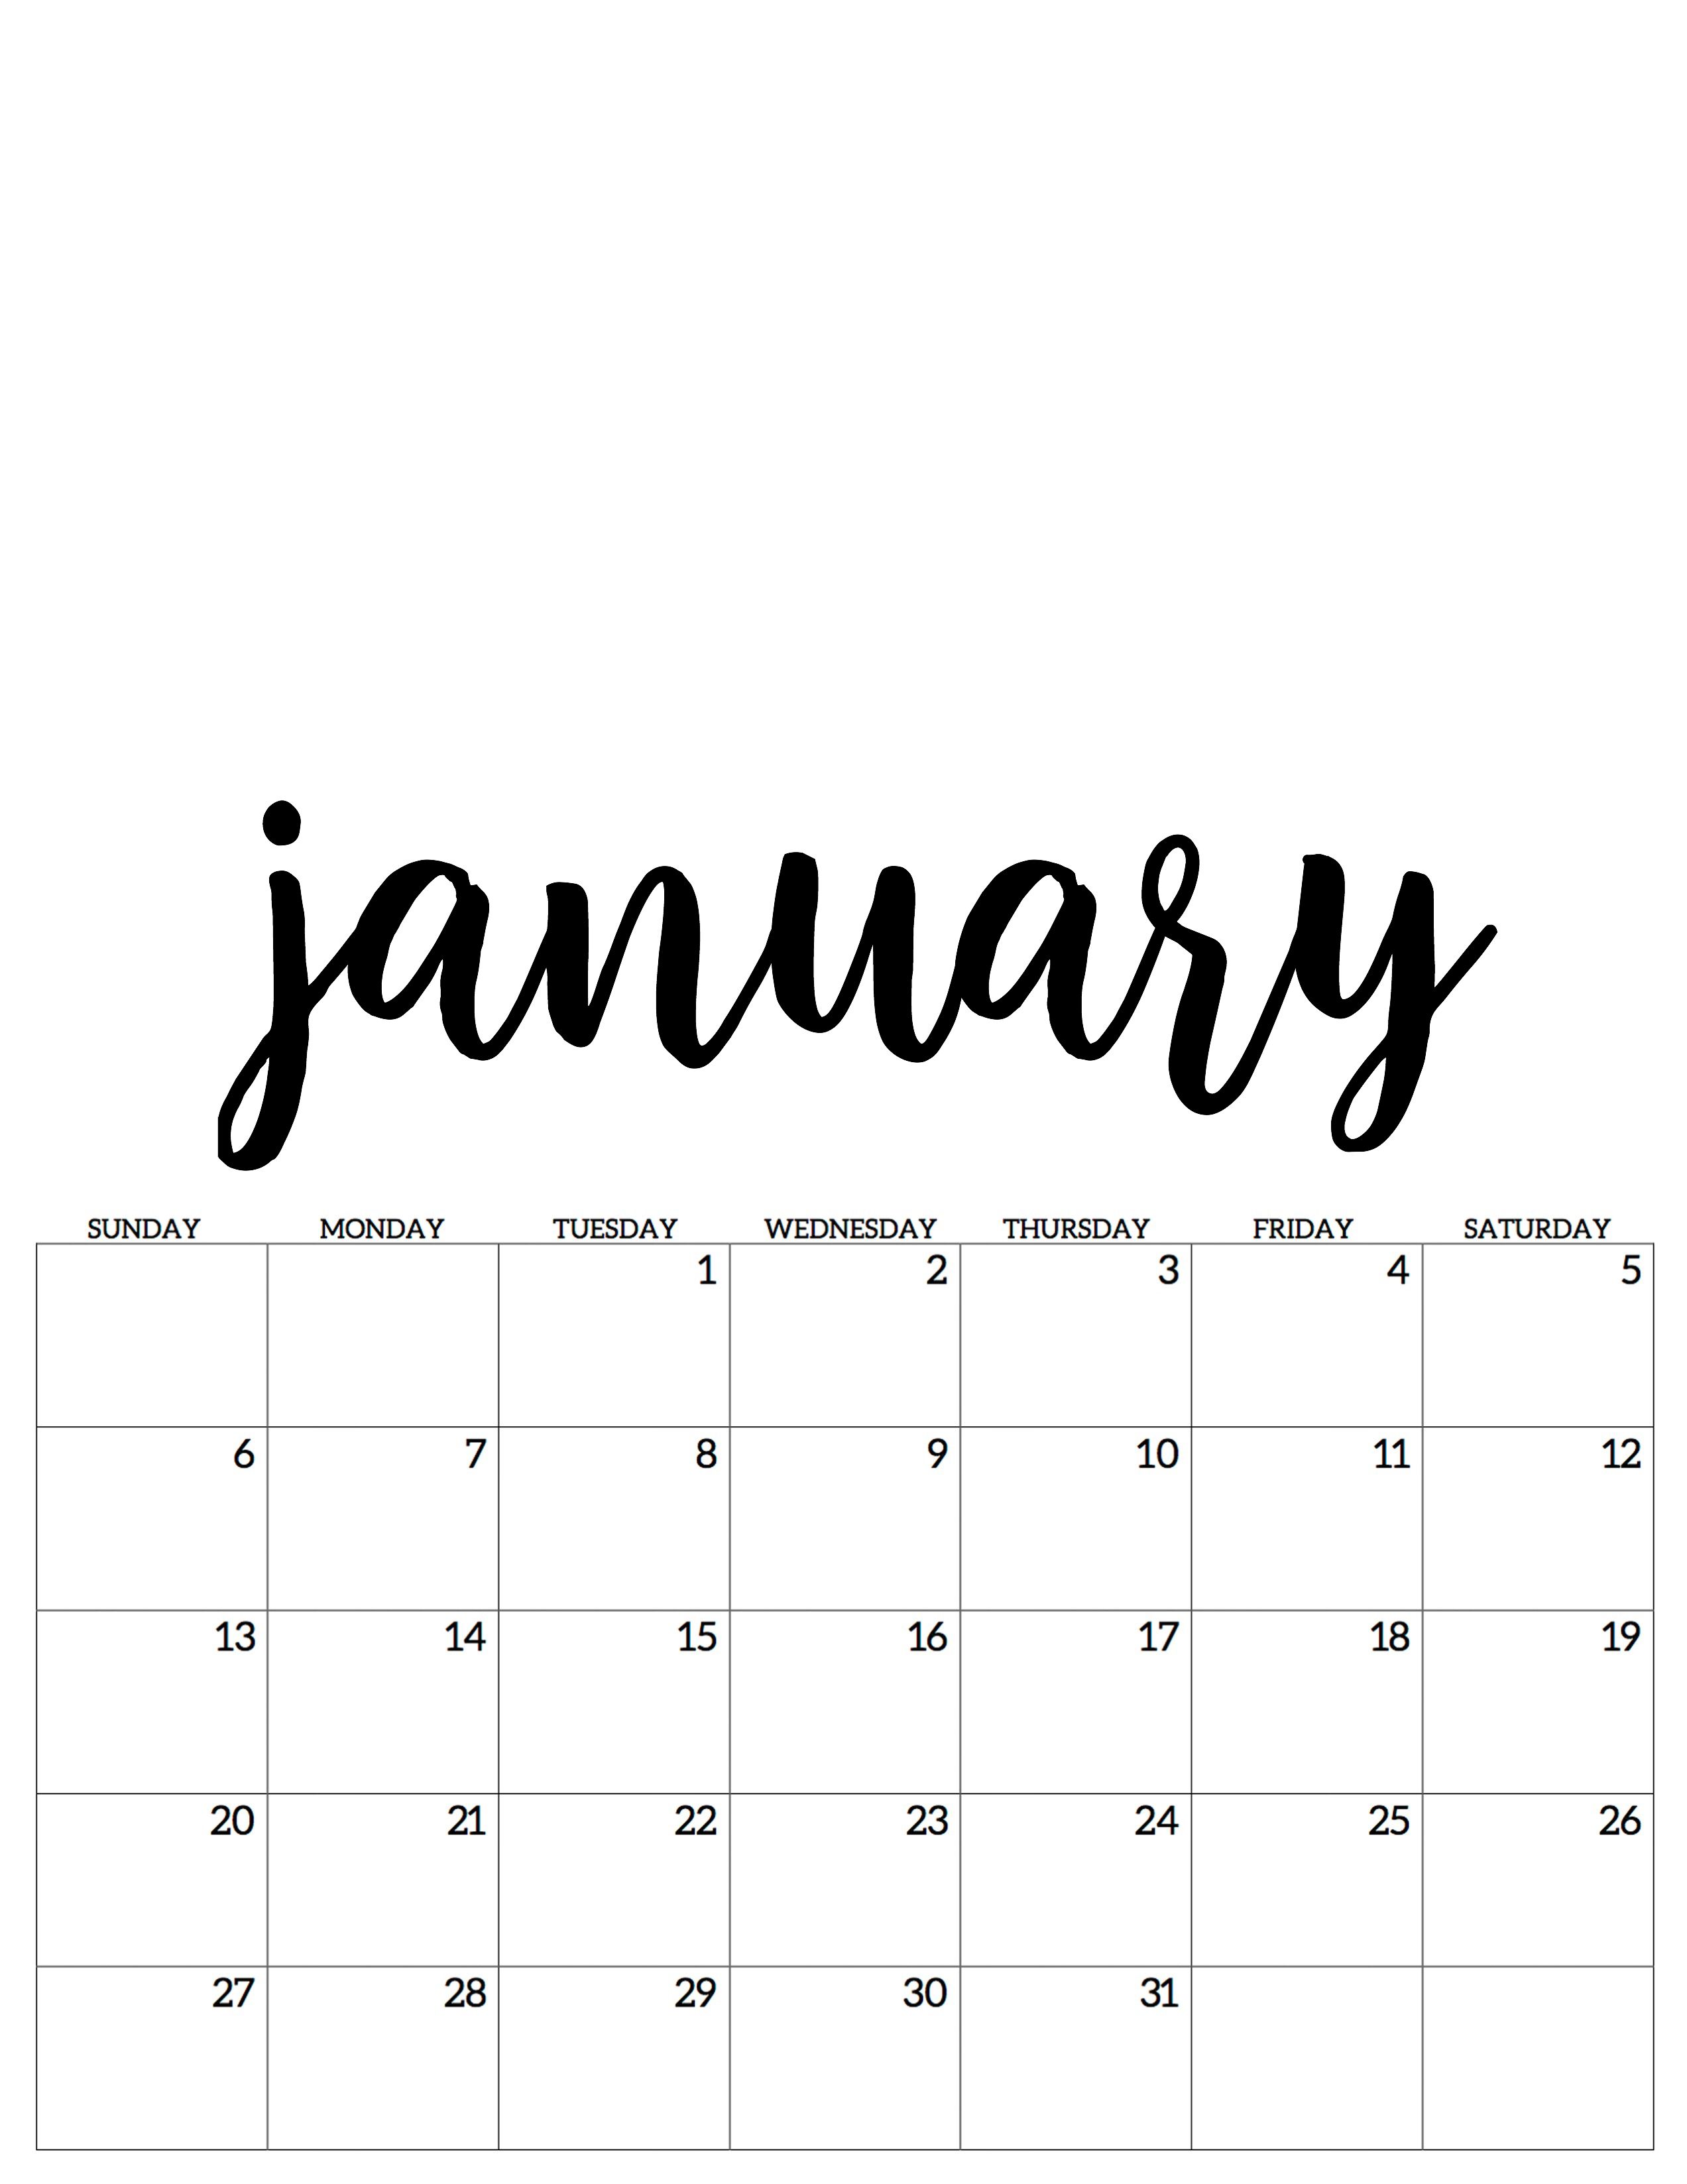 january januar kalender calendar 2019 januar kalender kalender und 2019 kalender. Black Bedroom Furniture Sets. Home Design Ideas